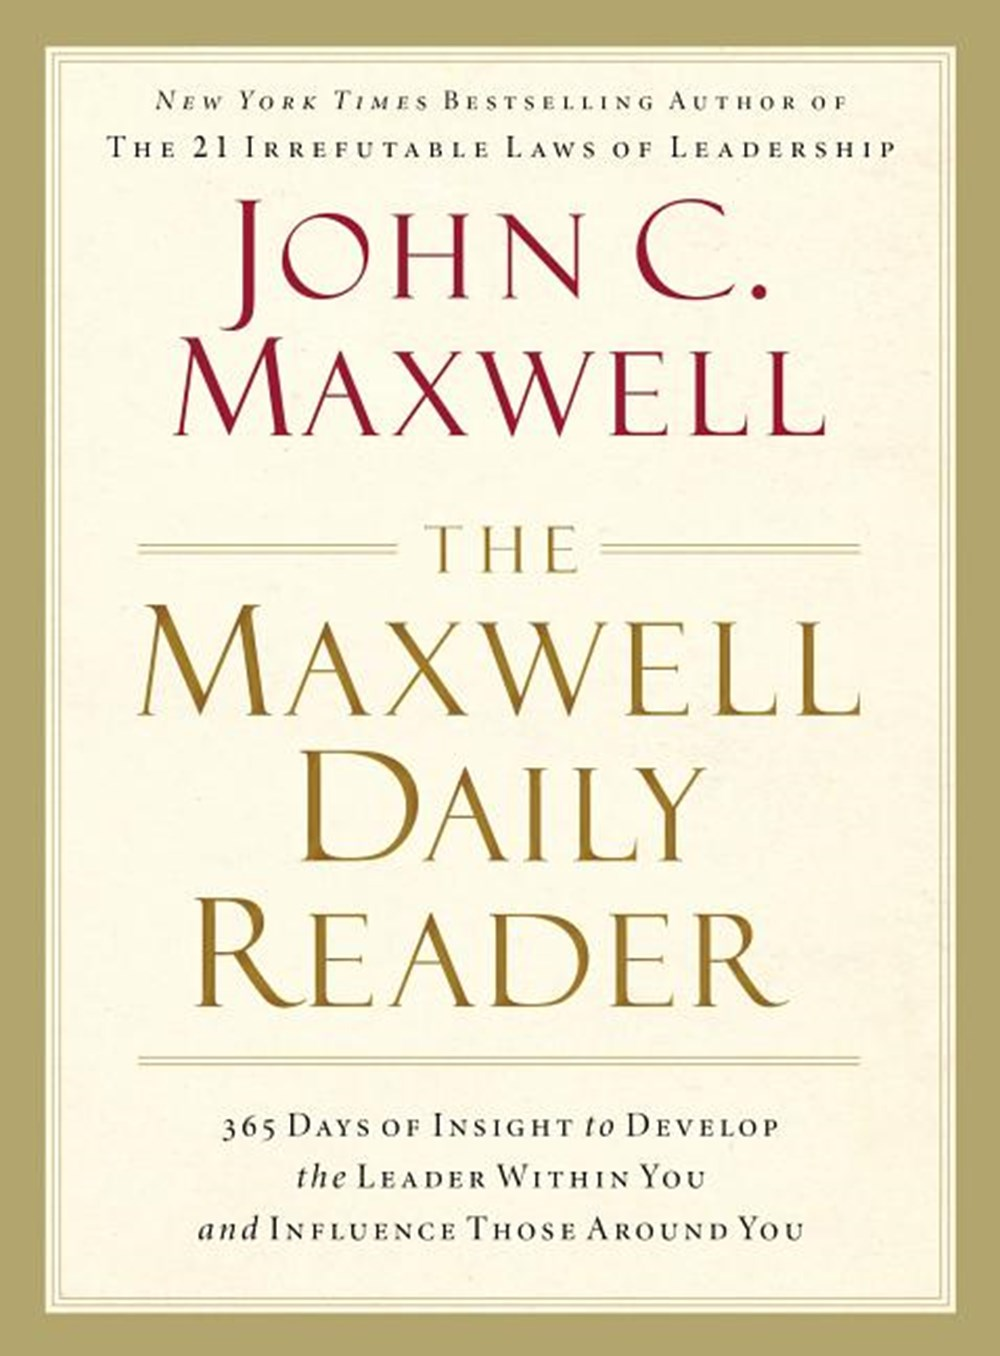 Maxwell Daily Reader 365 Days of Insight to Develop the Leader Within You and Influence Those Around